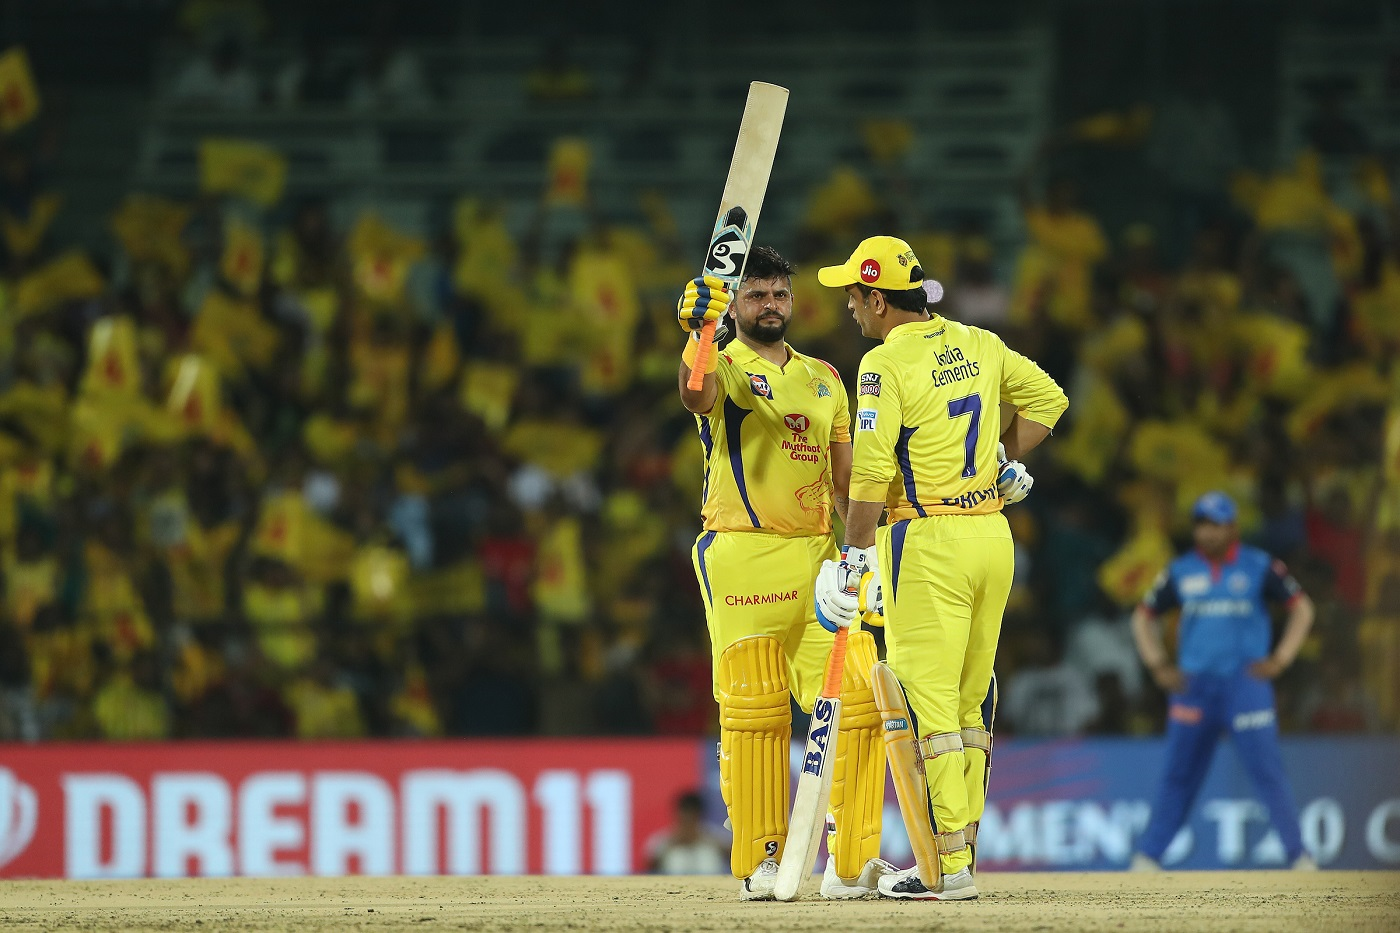 IPL 2019: Watch - Chris Morris Upholds the Spirit of Cricket, Apologises After Bowling a Beamer to MS Dhoni 1